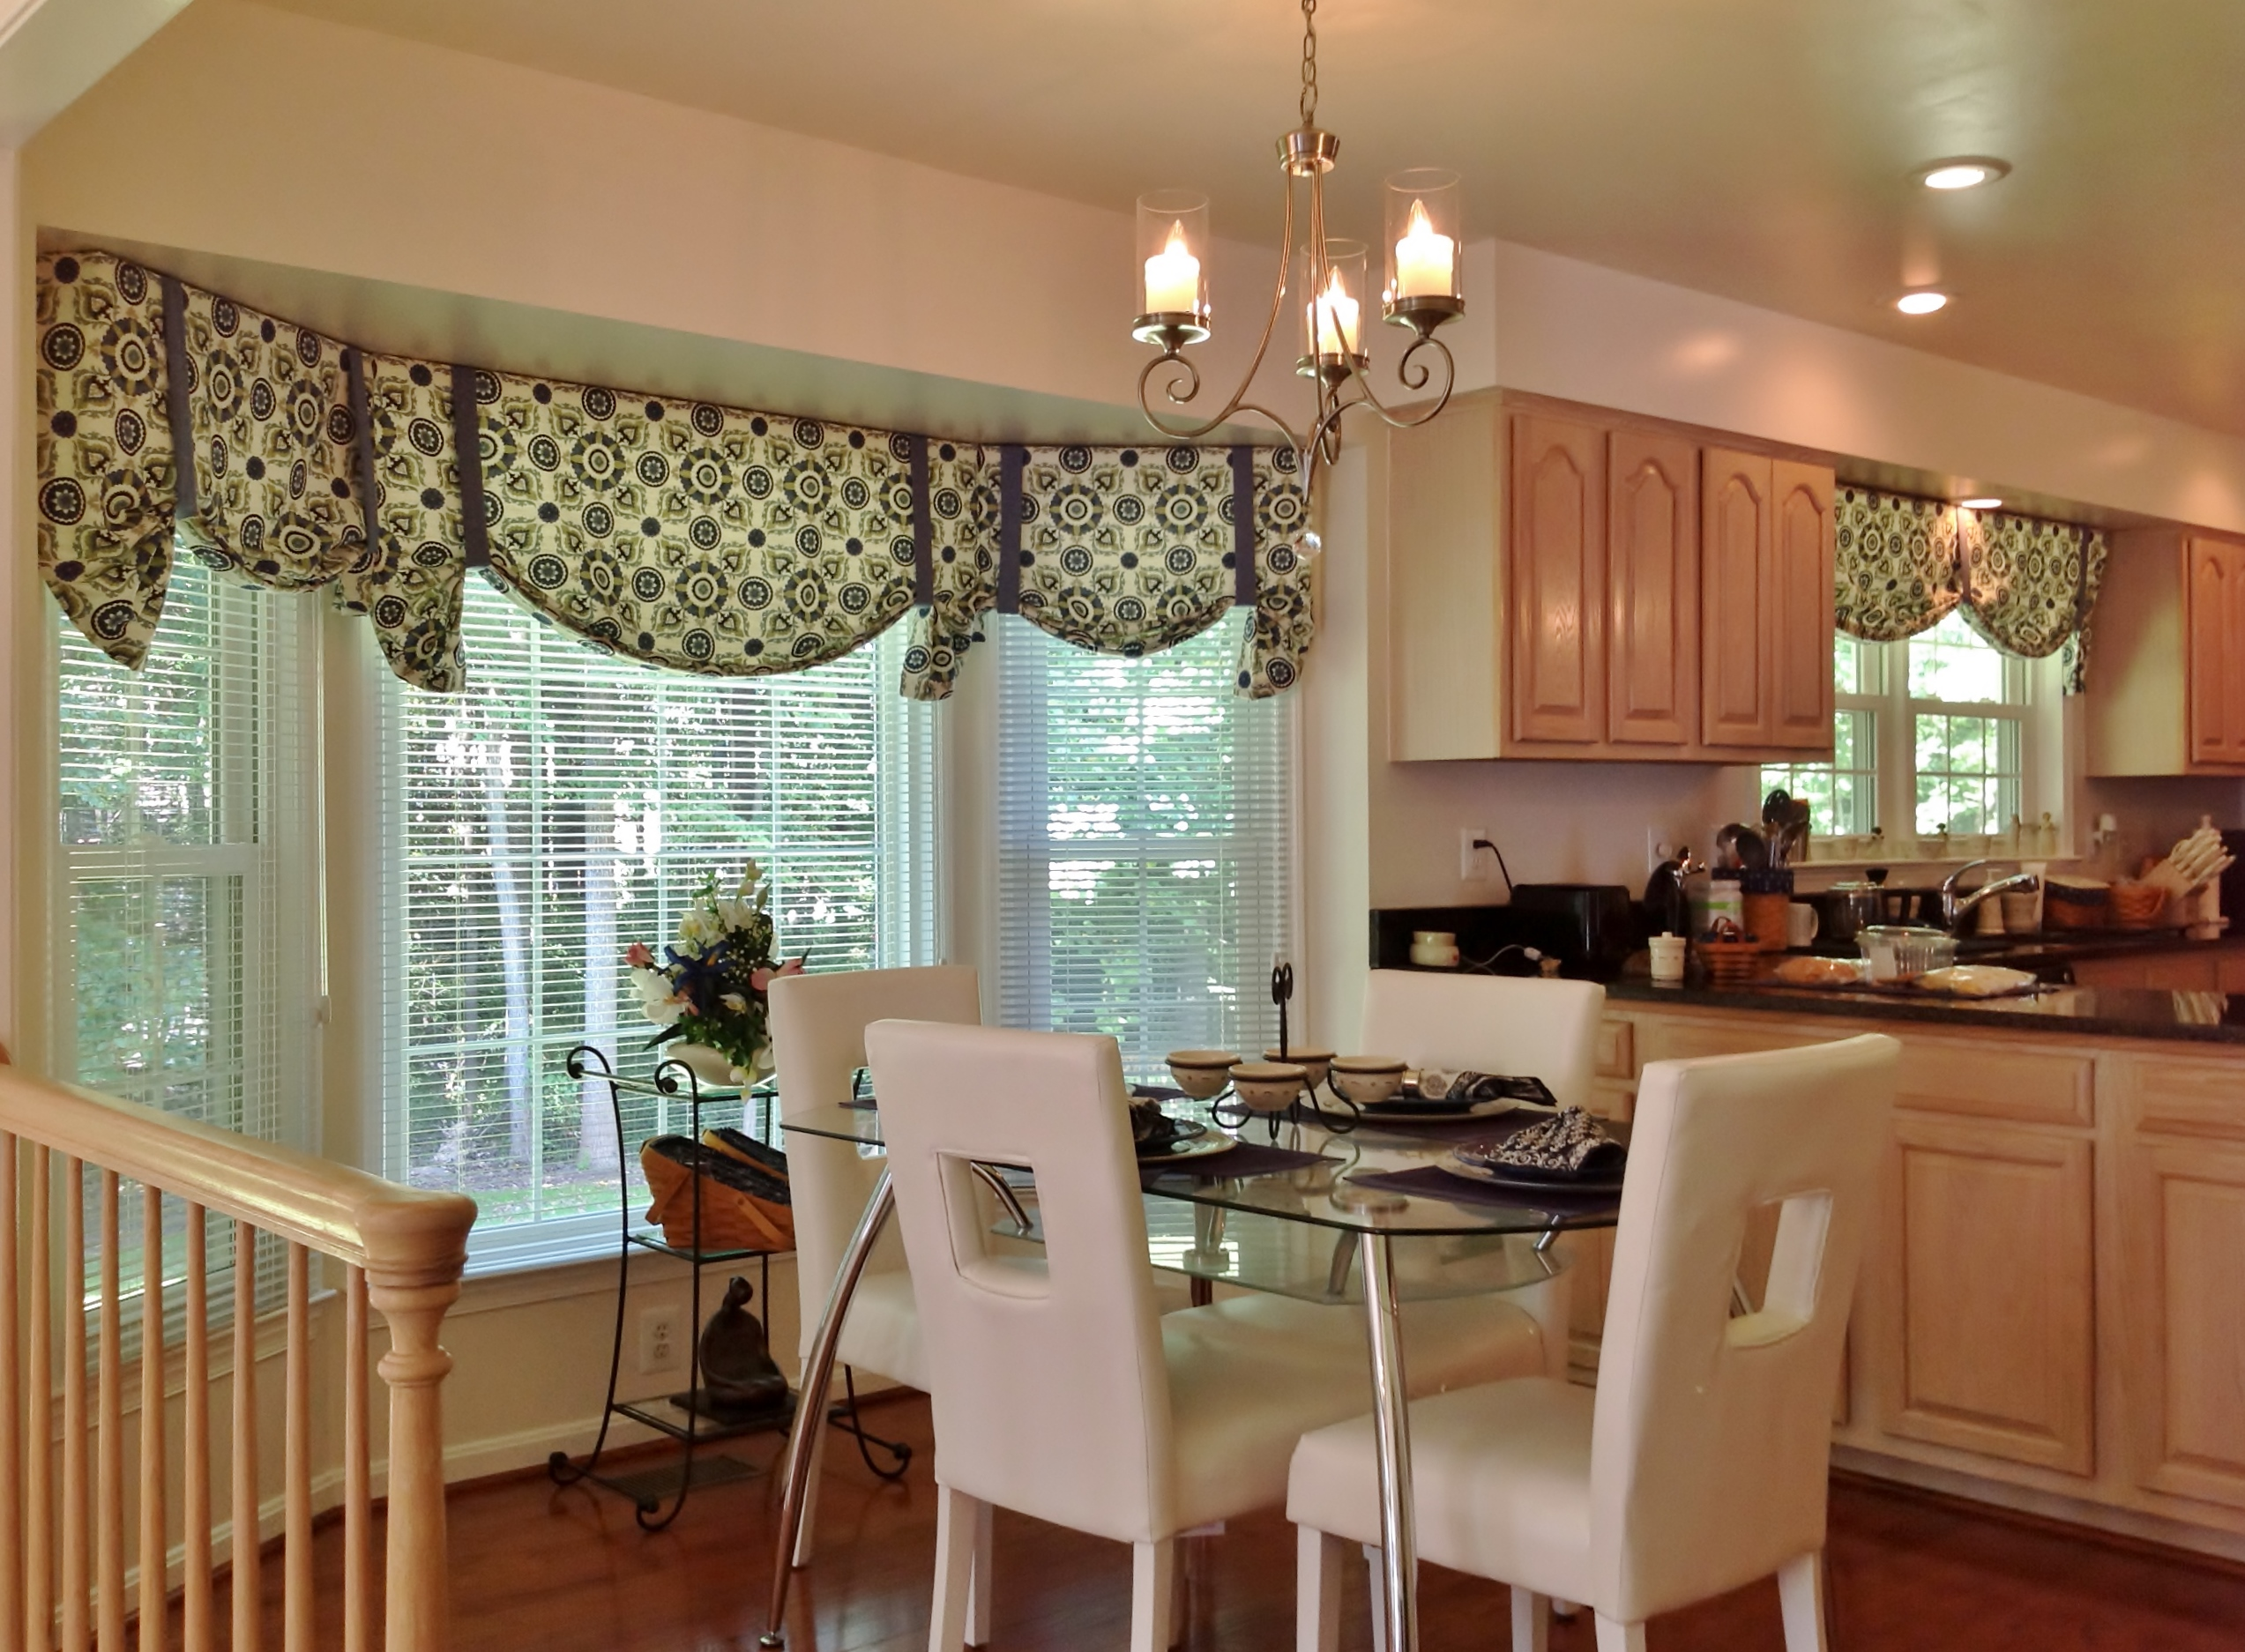 valance white valances and affordable modern decor curtains kitchen popular windows home for